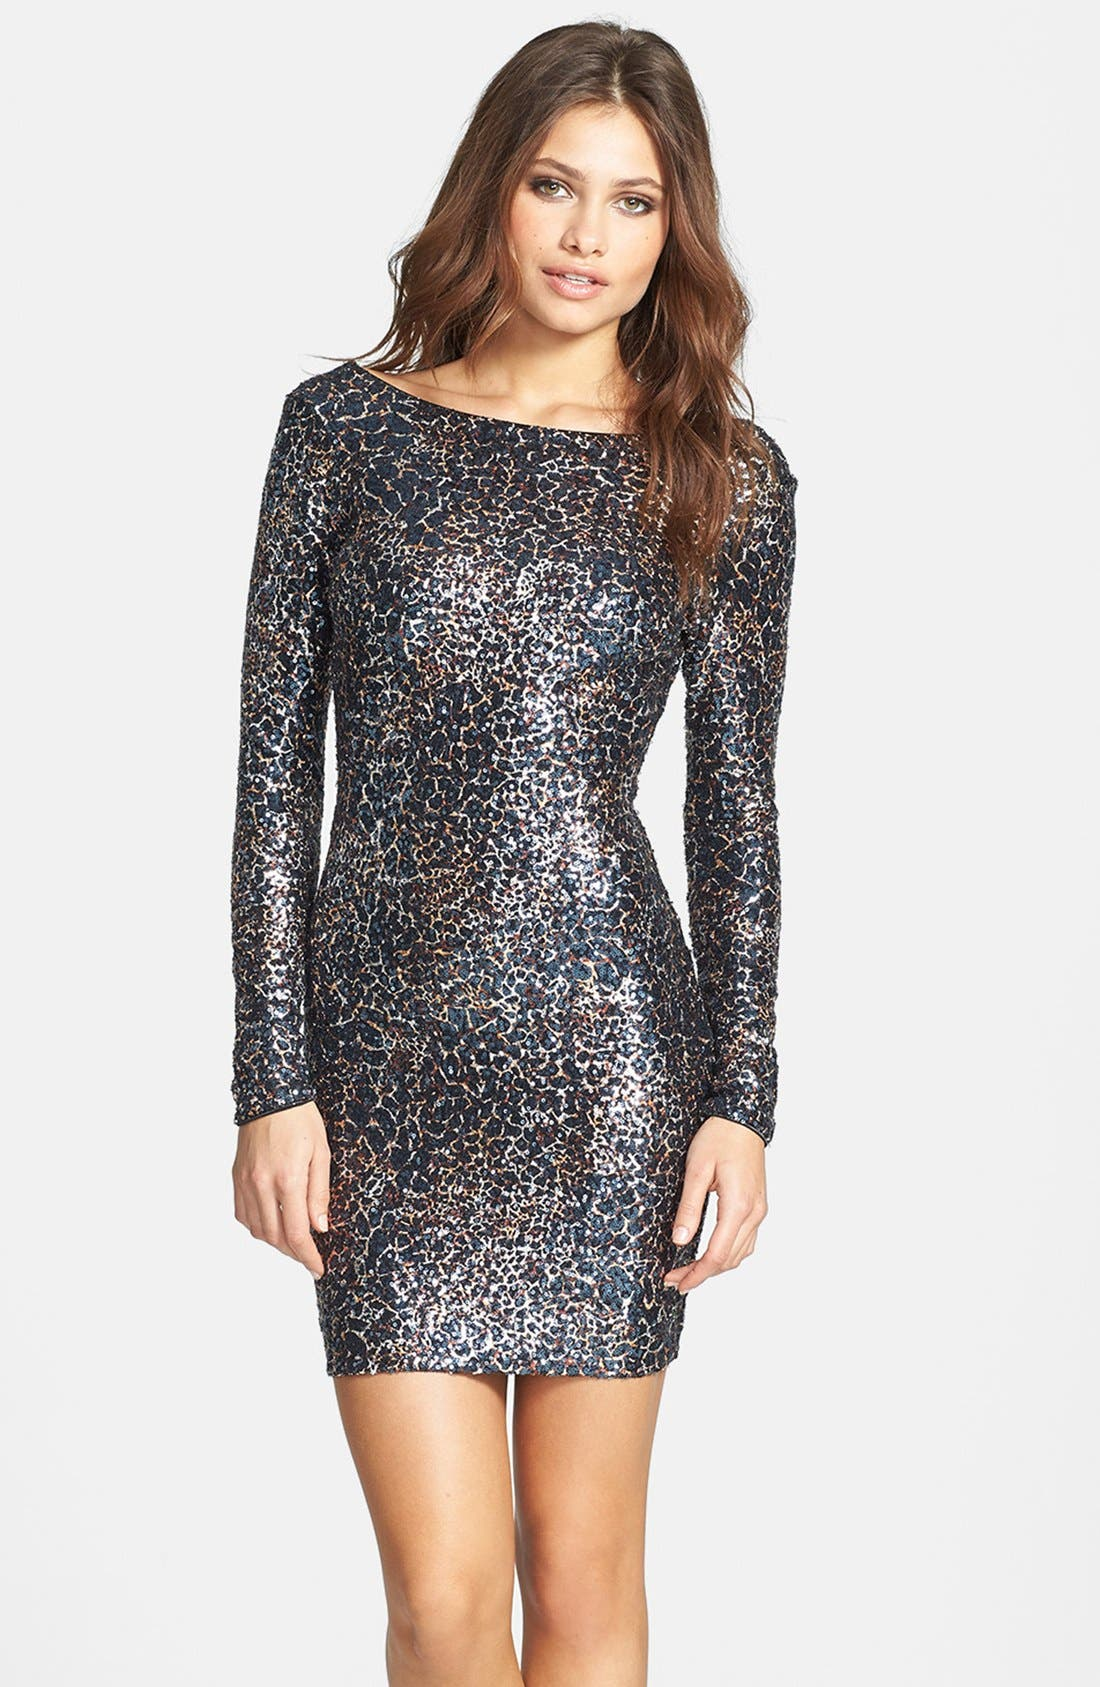 Main Image - Dress the Population 'Lola' Foiled Sequin Body-Con Dress